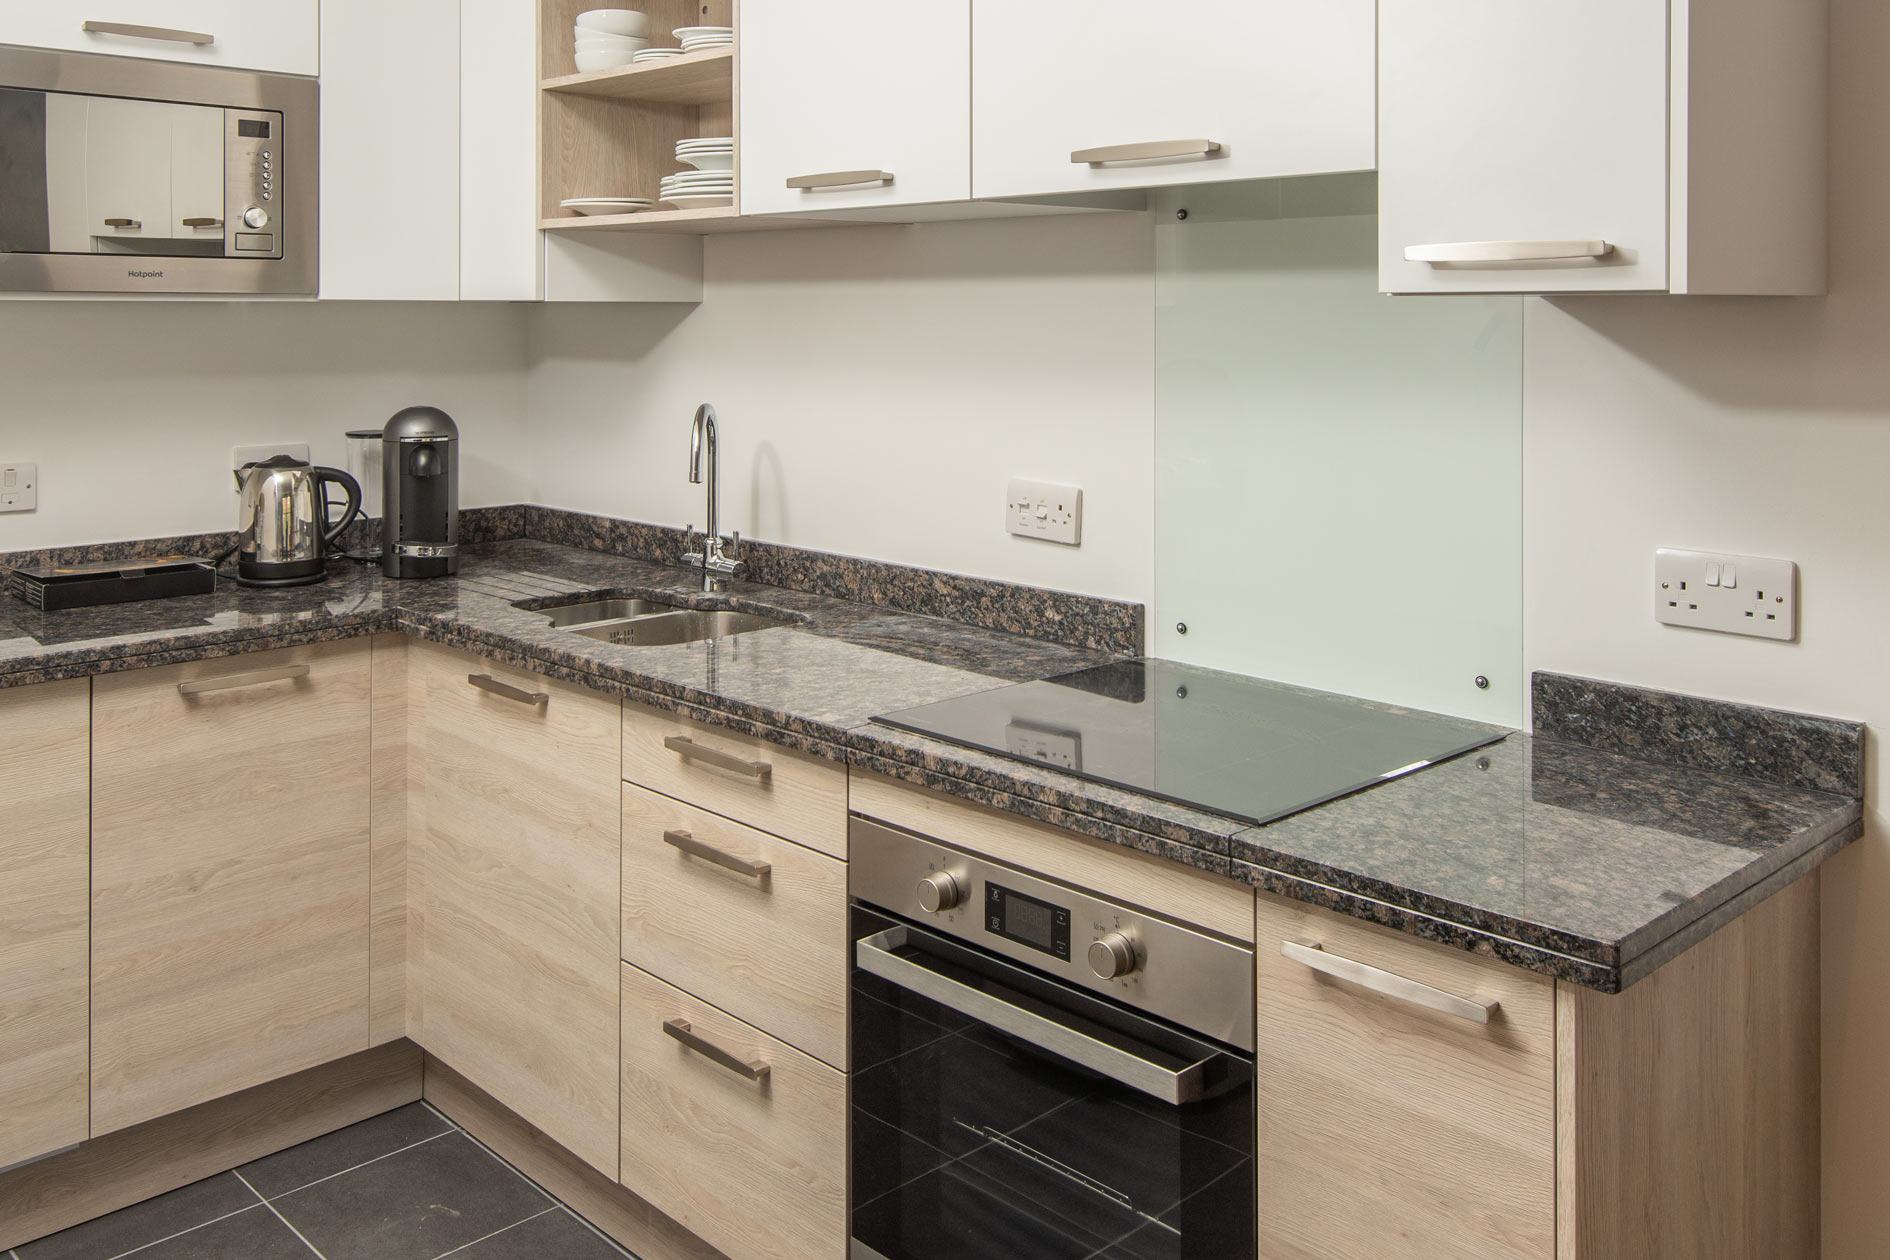 Contemporary White A Light Wood Kitchen With Dark Granite Worktops And Stainless Steel Appliances